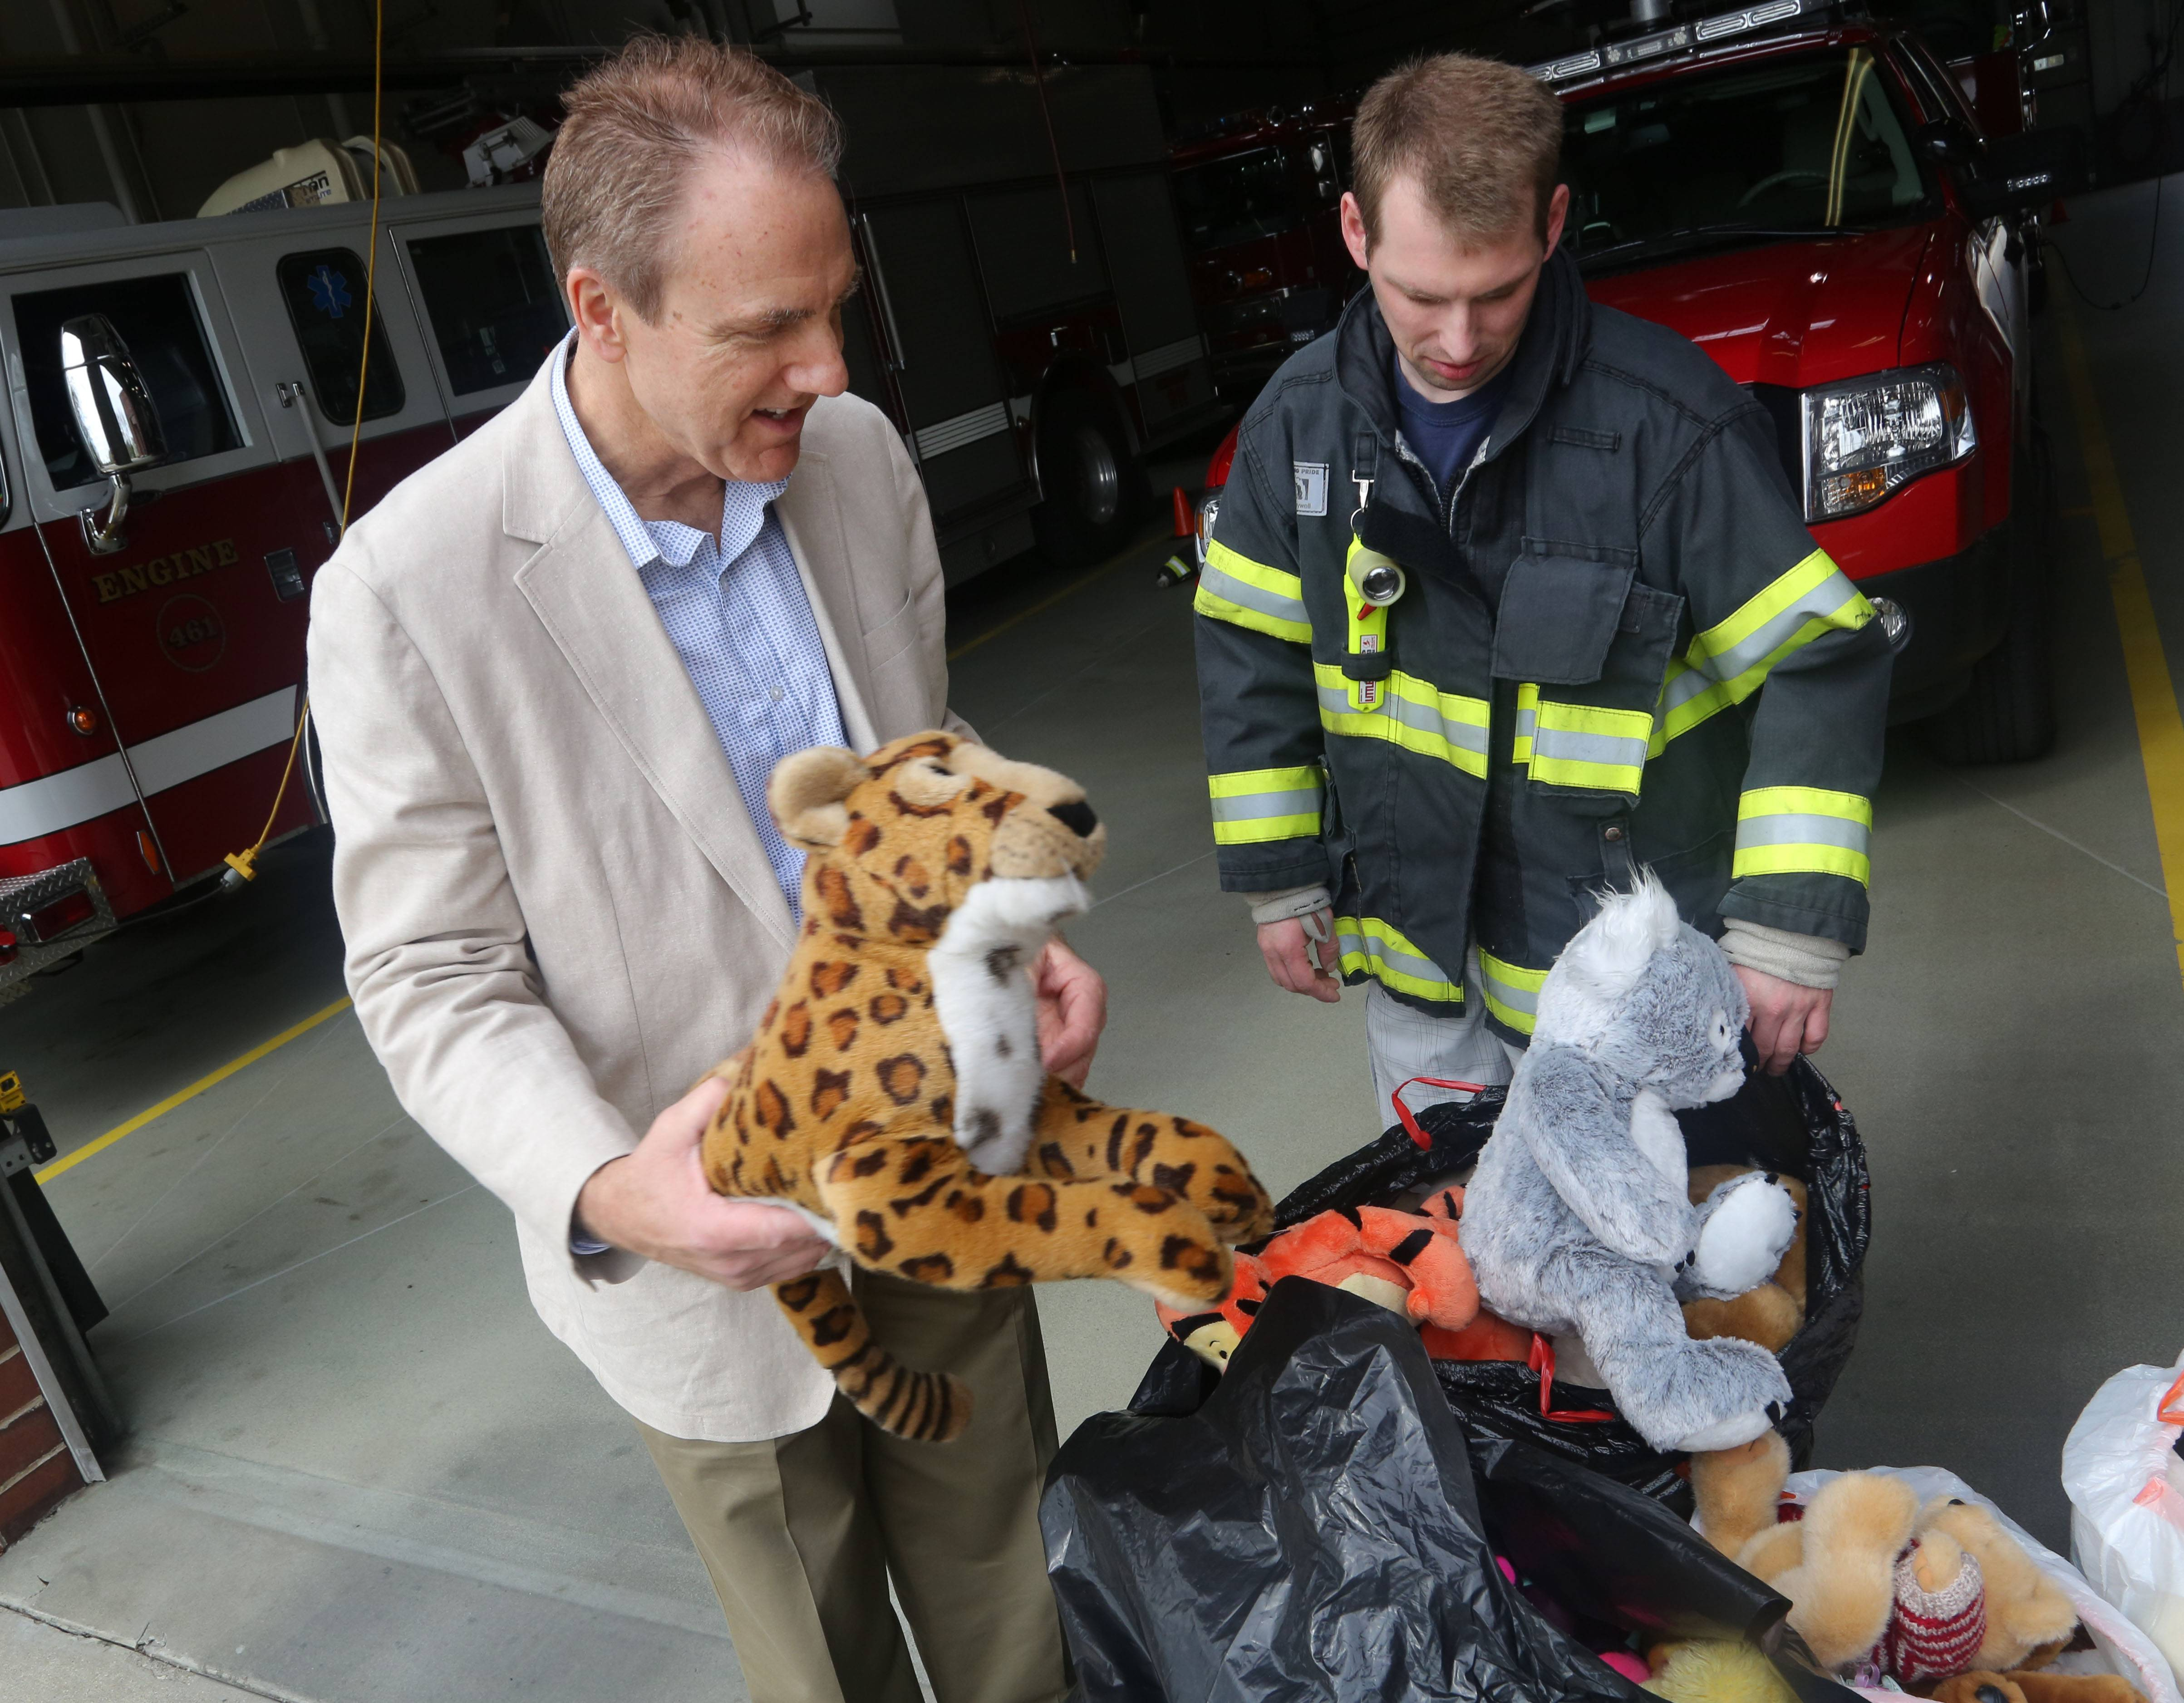 Libertyville chiropractor Dr. Tom Bennett, left, and Libertyville firefighter Brian Bagdon look through bags of stuffed animals Bennett collected from patients and donated at the Libertyville fire station headquarters Thursday. The animals are given to kids on emergency calls.